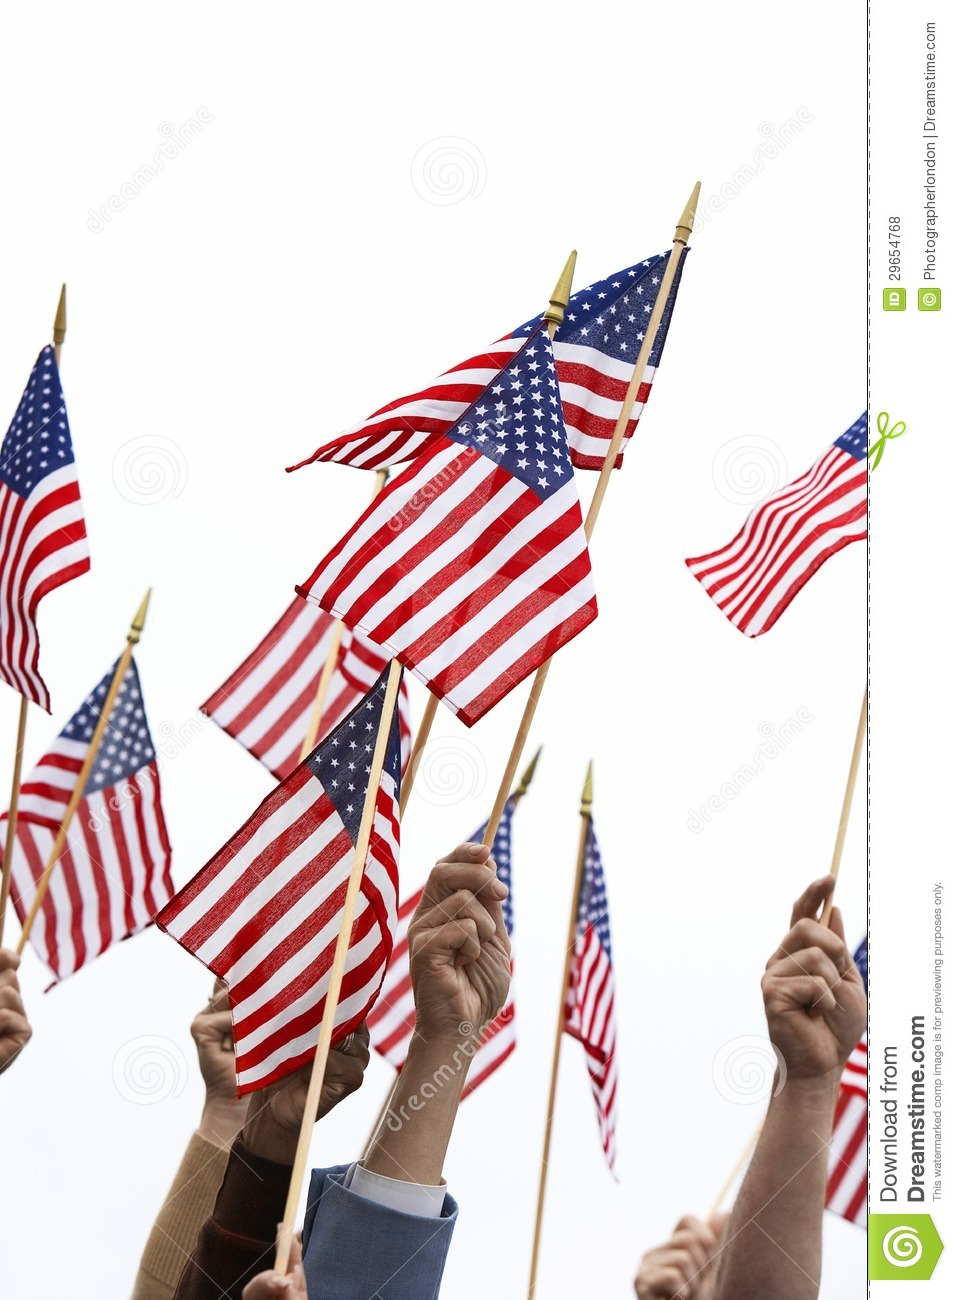 Citizens Of Beauty: Hands Holding American Flag Royalty Free Stock Photos